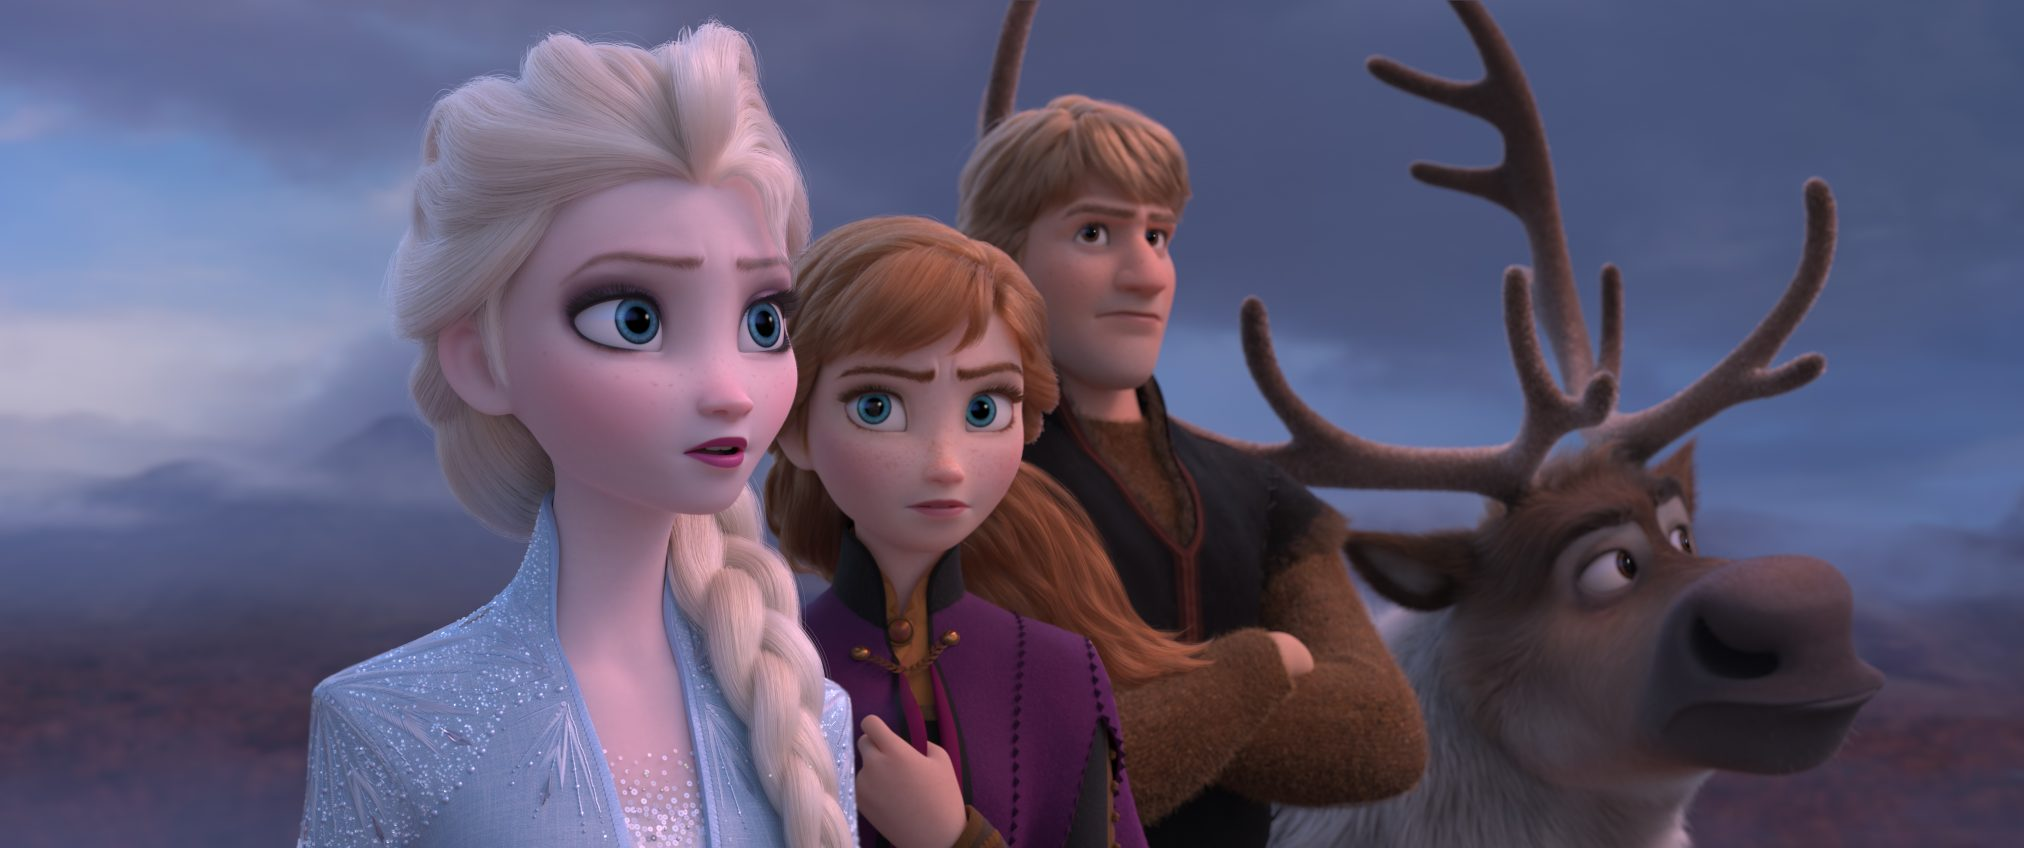 Don't Miss Disney's Frozen 2 New Trailer and Poster! In theaters Nov 22nd! #Frozen2